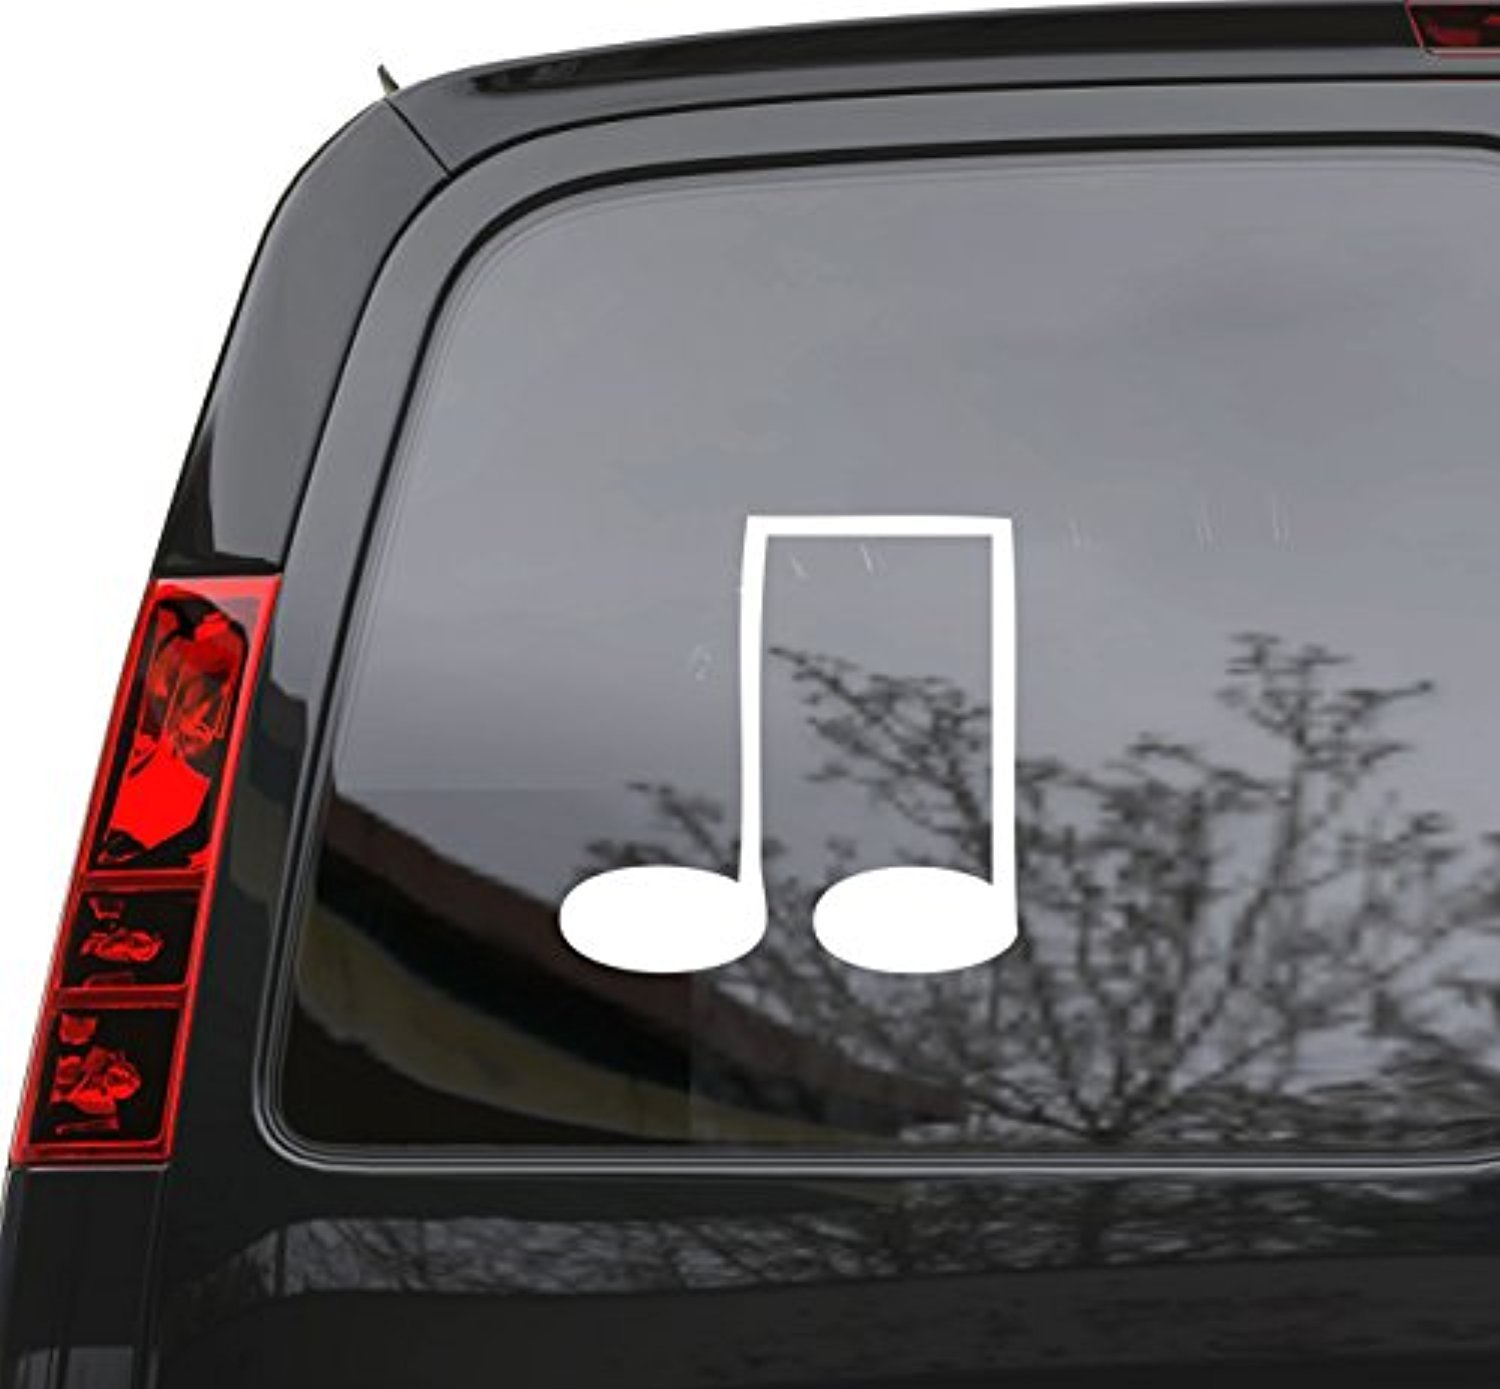 Amazon com art of decals amazing home decor auto car sticker decal musical notes music school teacher laptop window 5 by 5 n933cmade in the usa